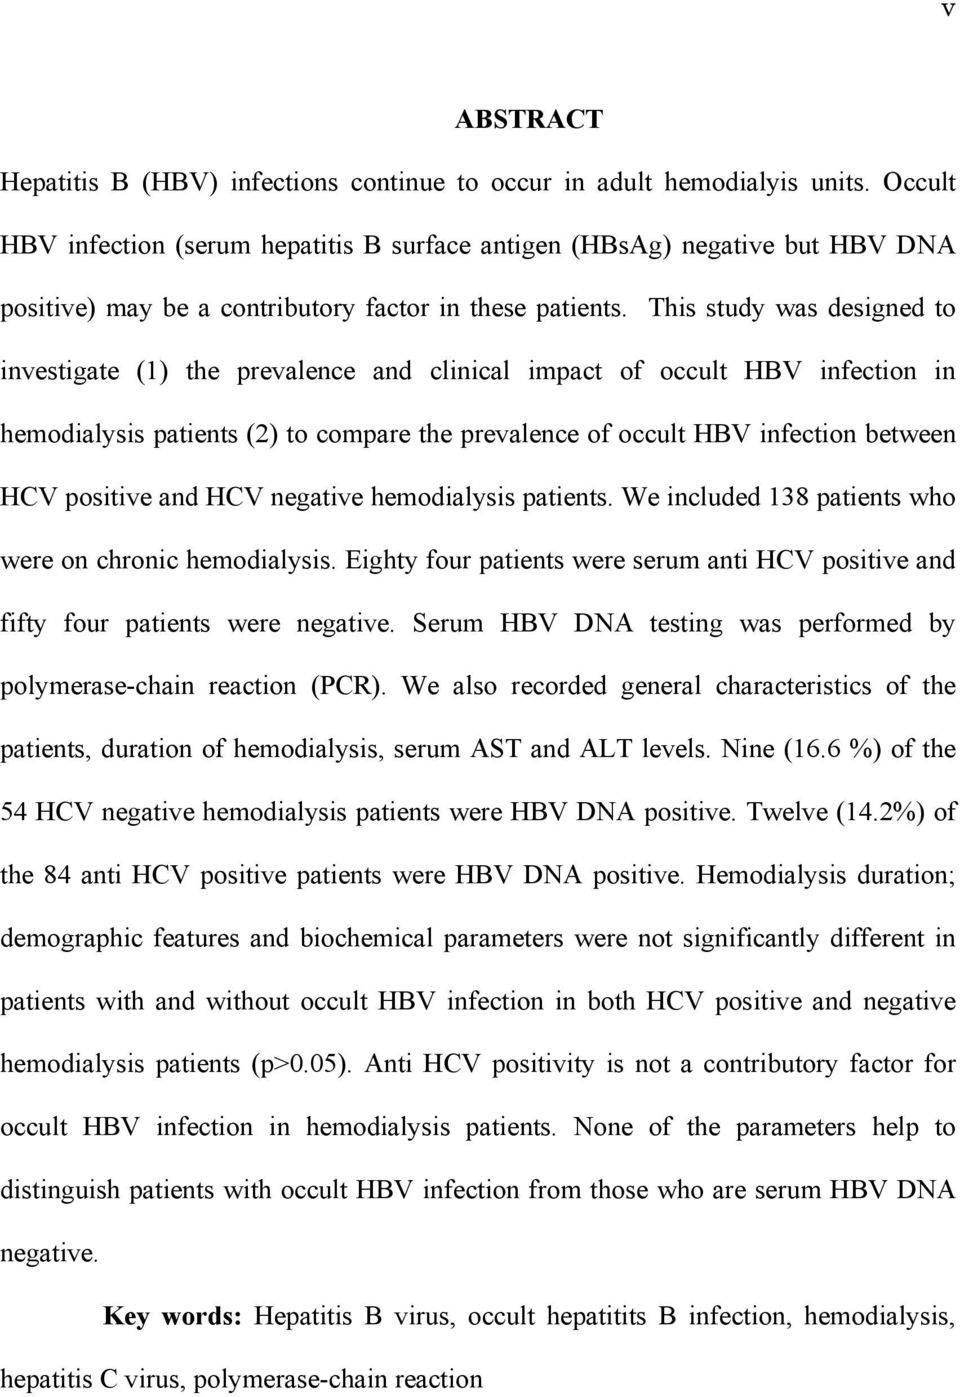 This study was designed to investigate (1) the prevalence and clinical impact of occult HBV infection in hemodialysis patients (2) to compare the prevalence of occult HBV infection between HCV